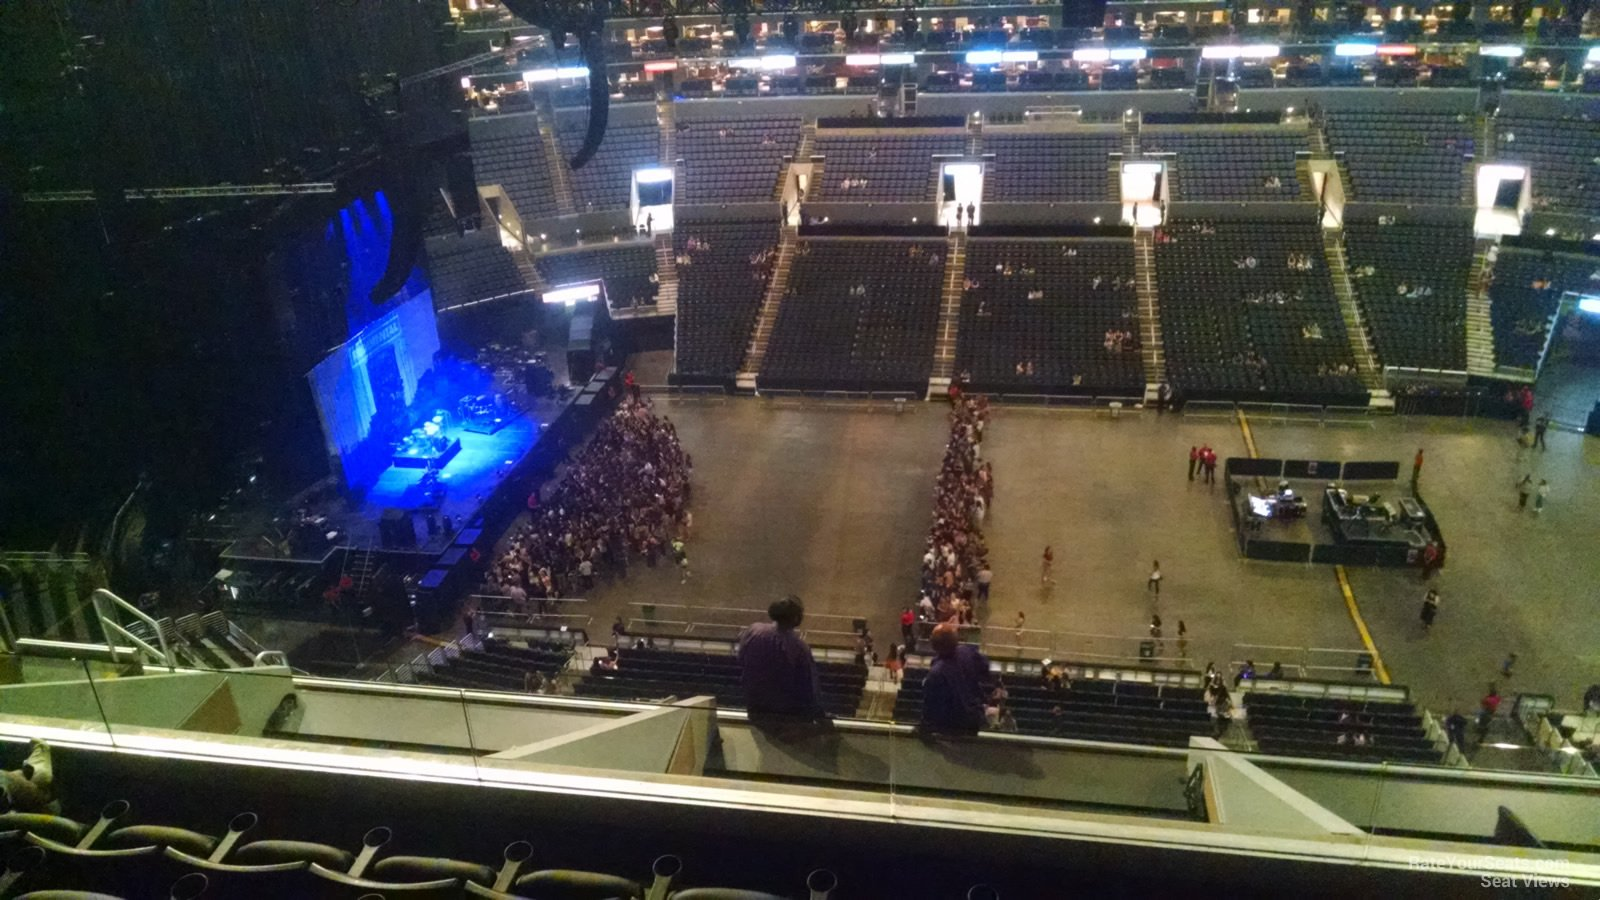 Staples Center Section 318 Concert Seating Rateyourseatscom